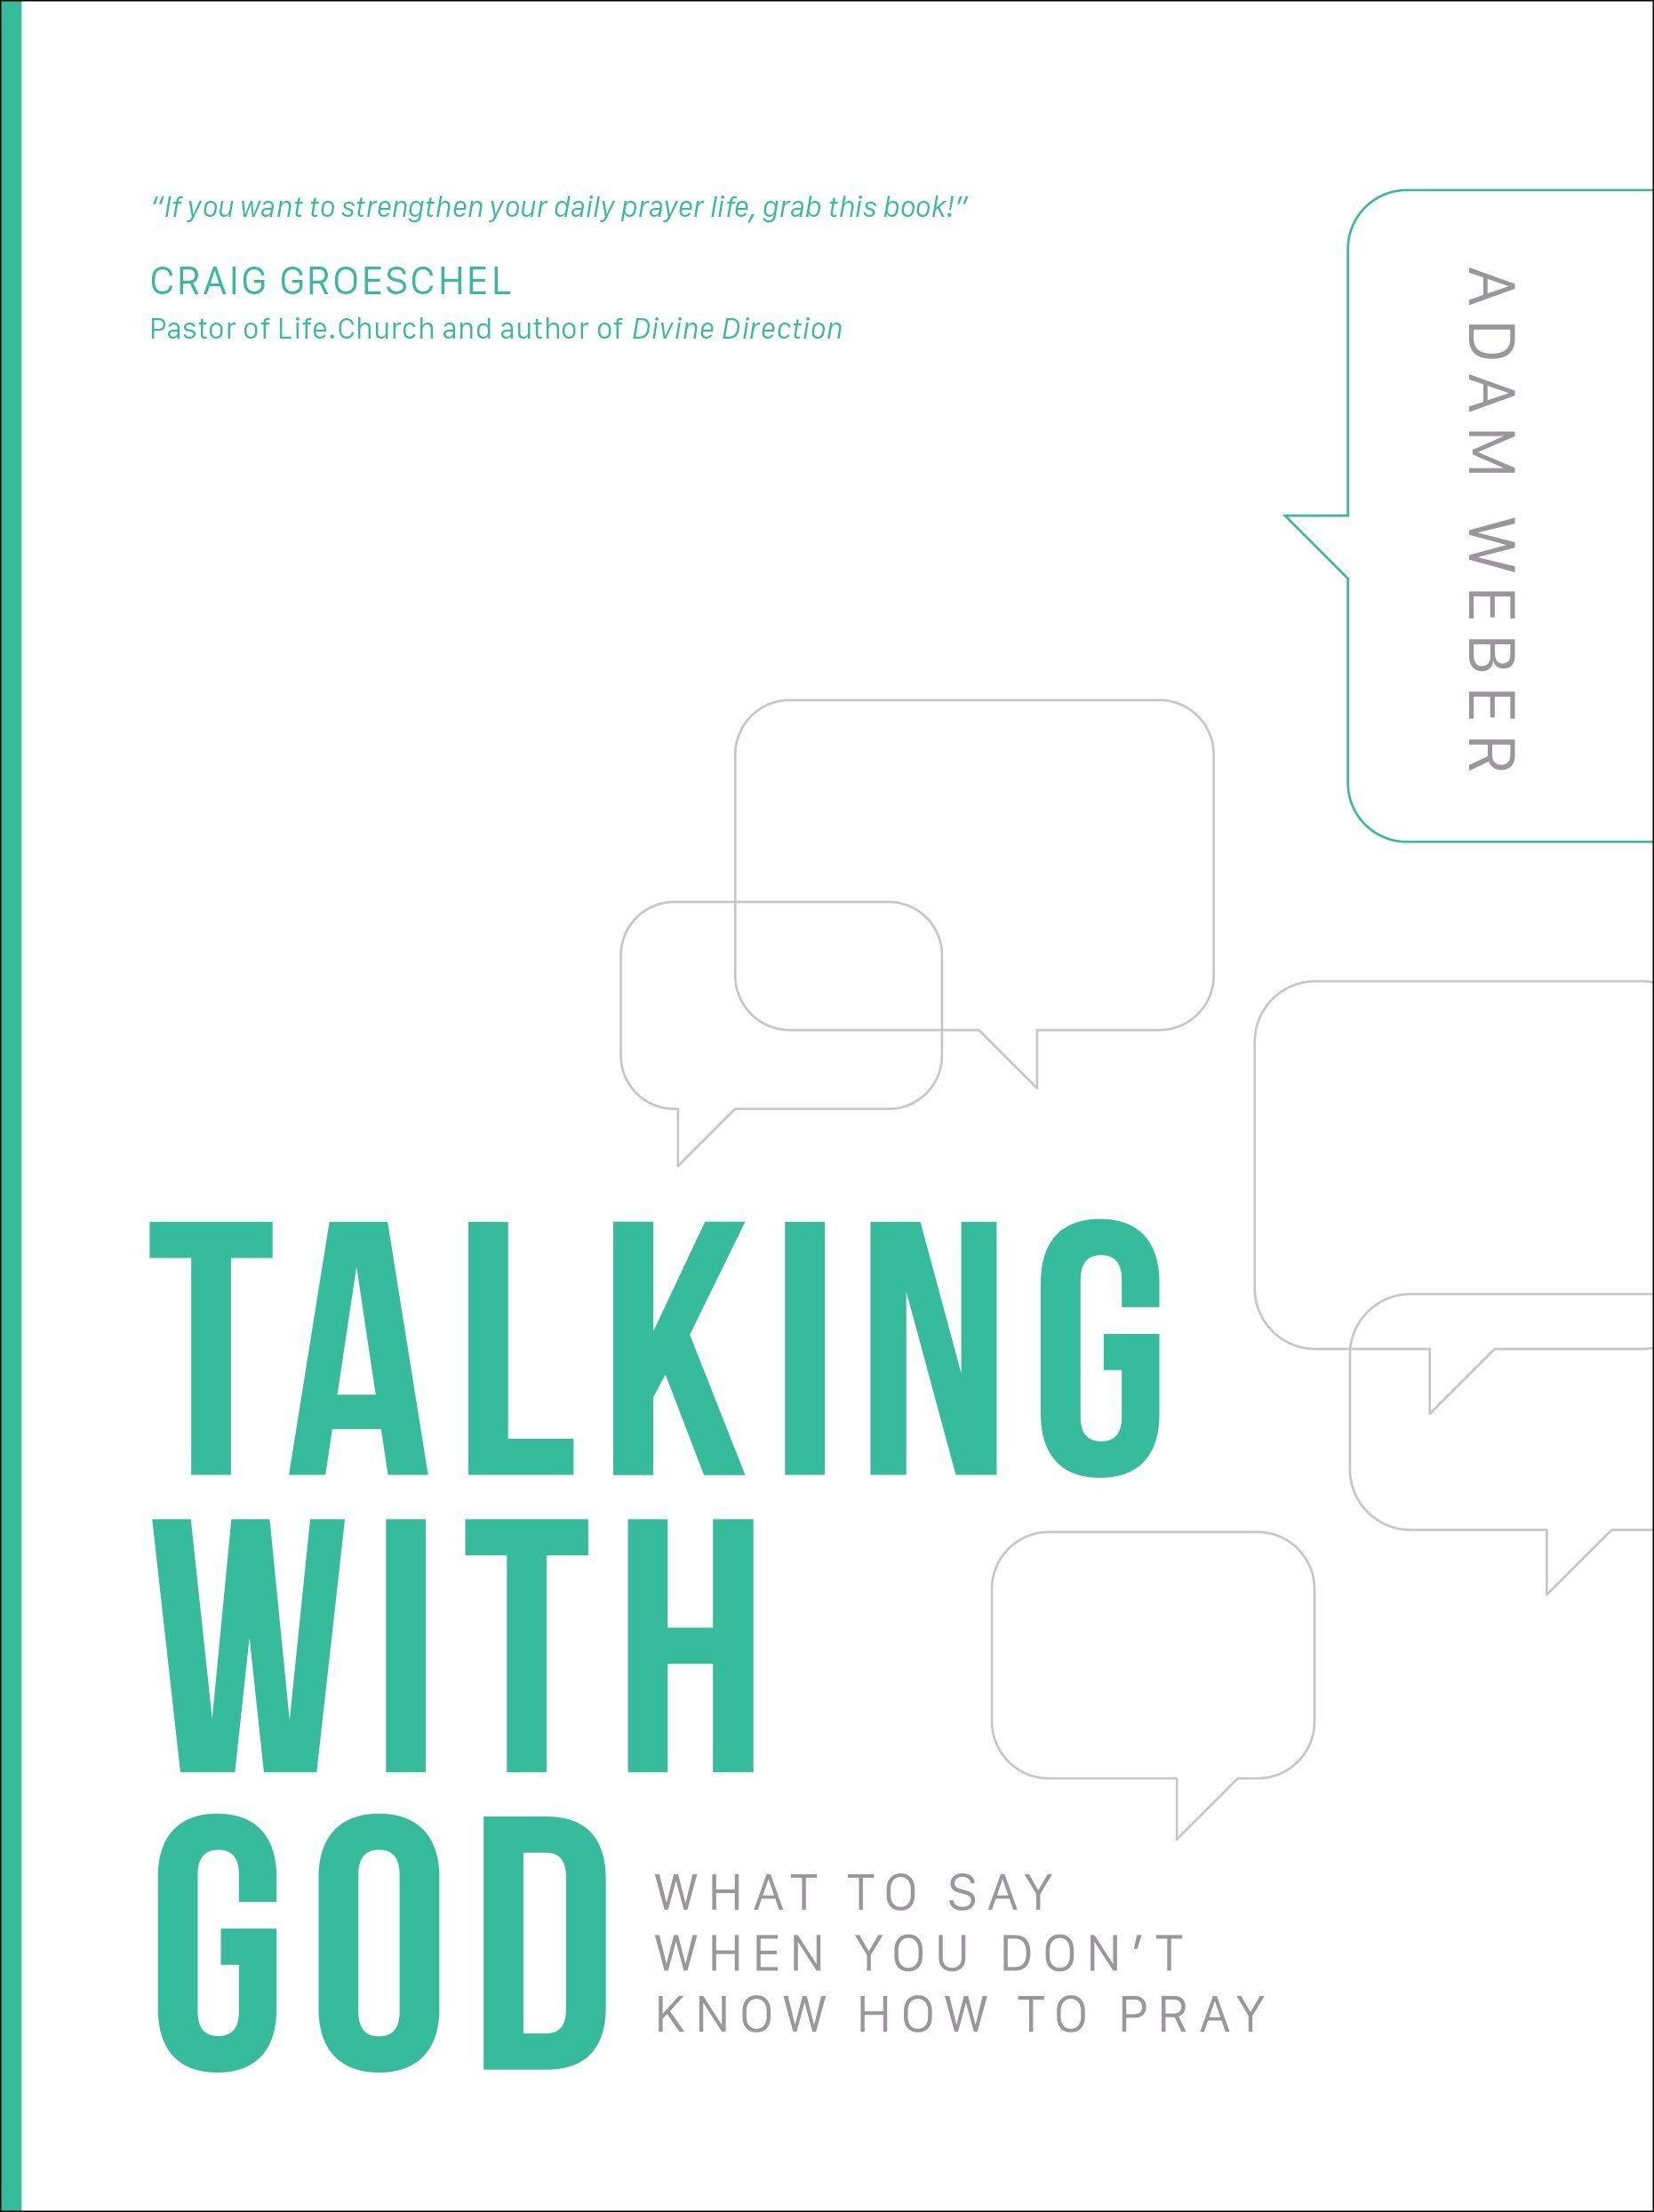 Personal prayer - everyone can talk with God